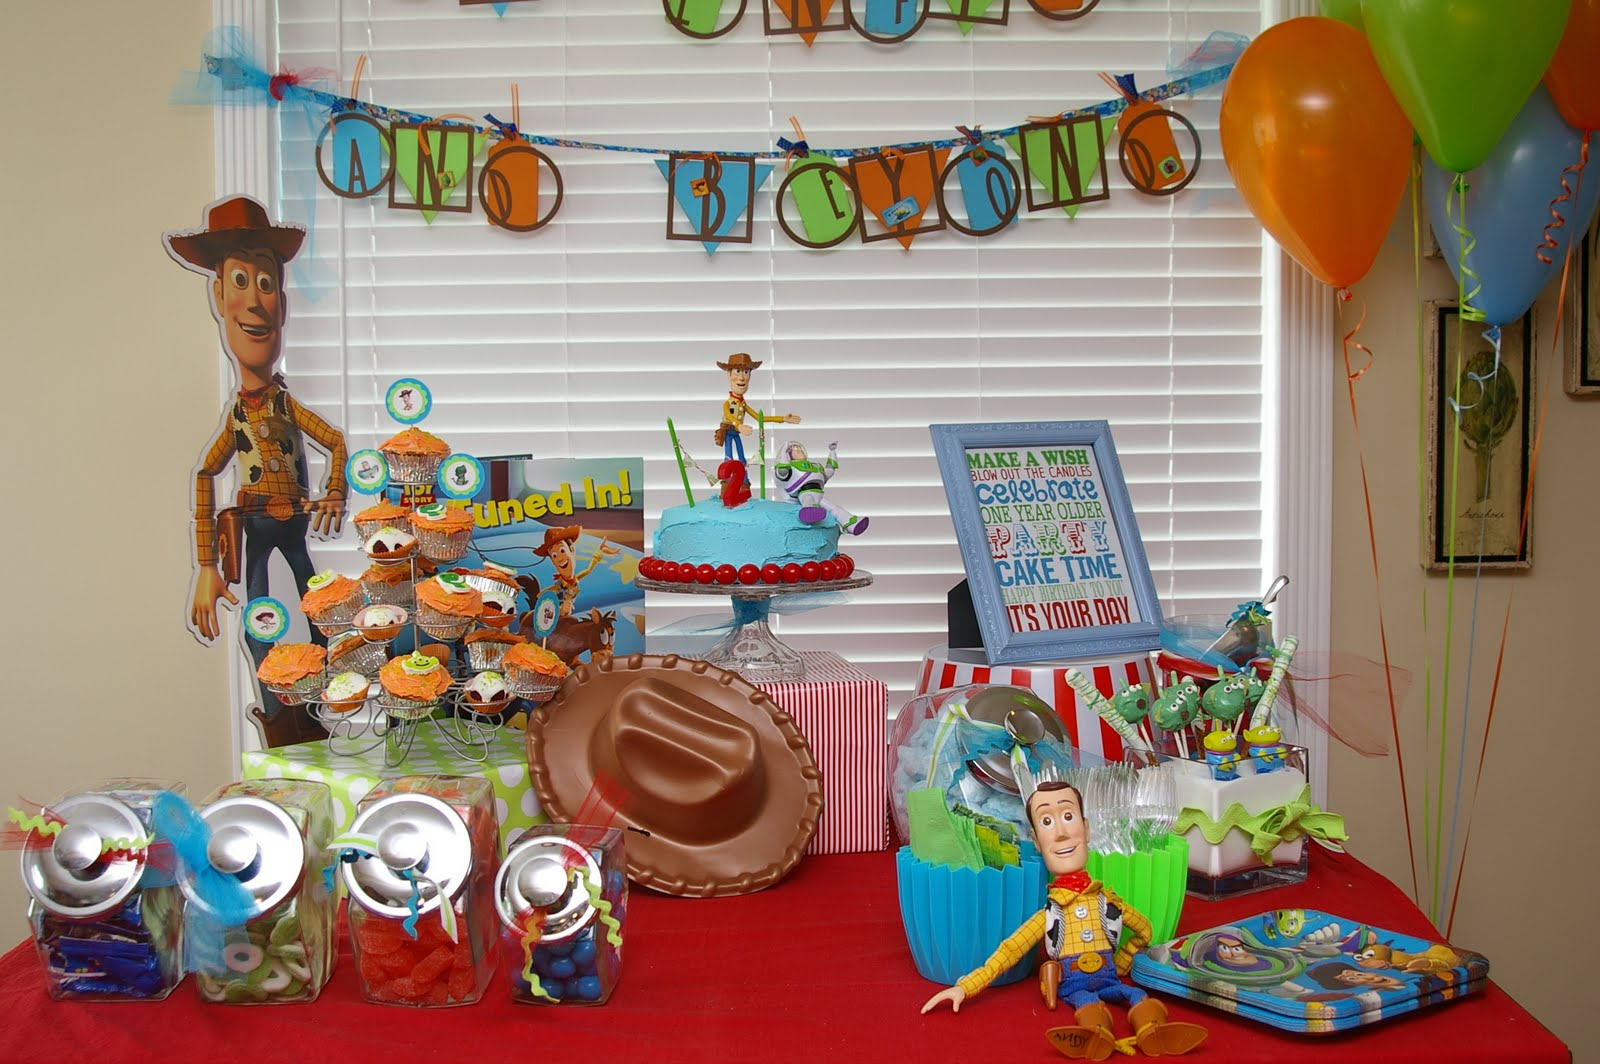 Toy Story Birthday Party : Bridgey widgey toy story party